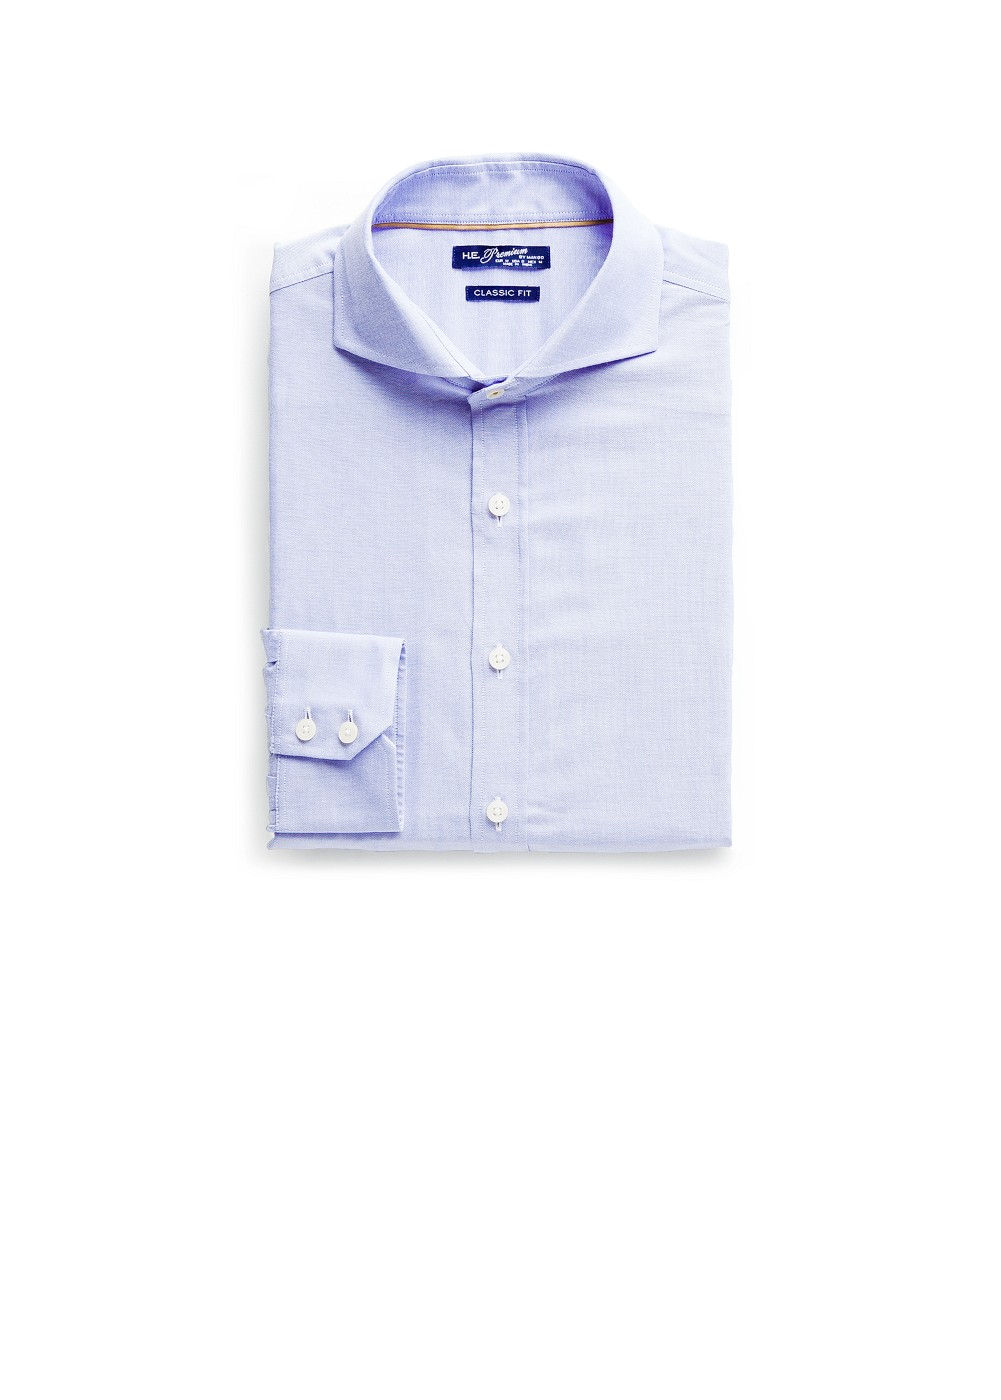 Straight-fit Premium oxford shirt